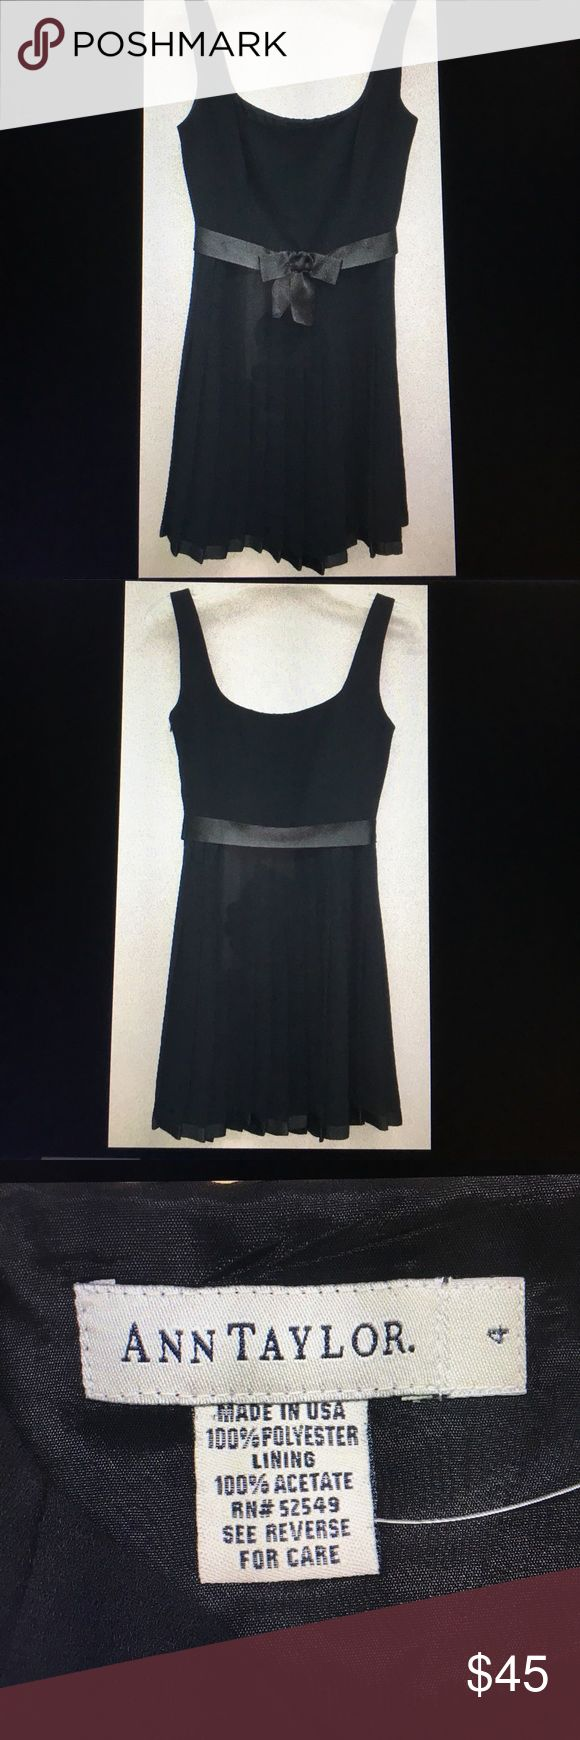 "Ann Taylor sleeveless pleated cocktail dress Sz 4 New with tags. Length 34"", pit to pit 17.25"", waist 26"" SMOKE FREE HOME Ann Taylor Dresses Midi"